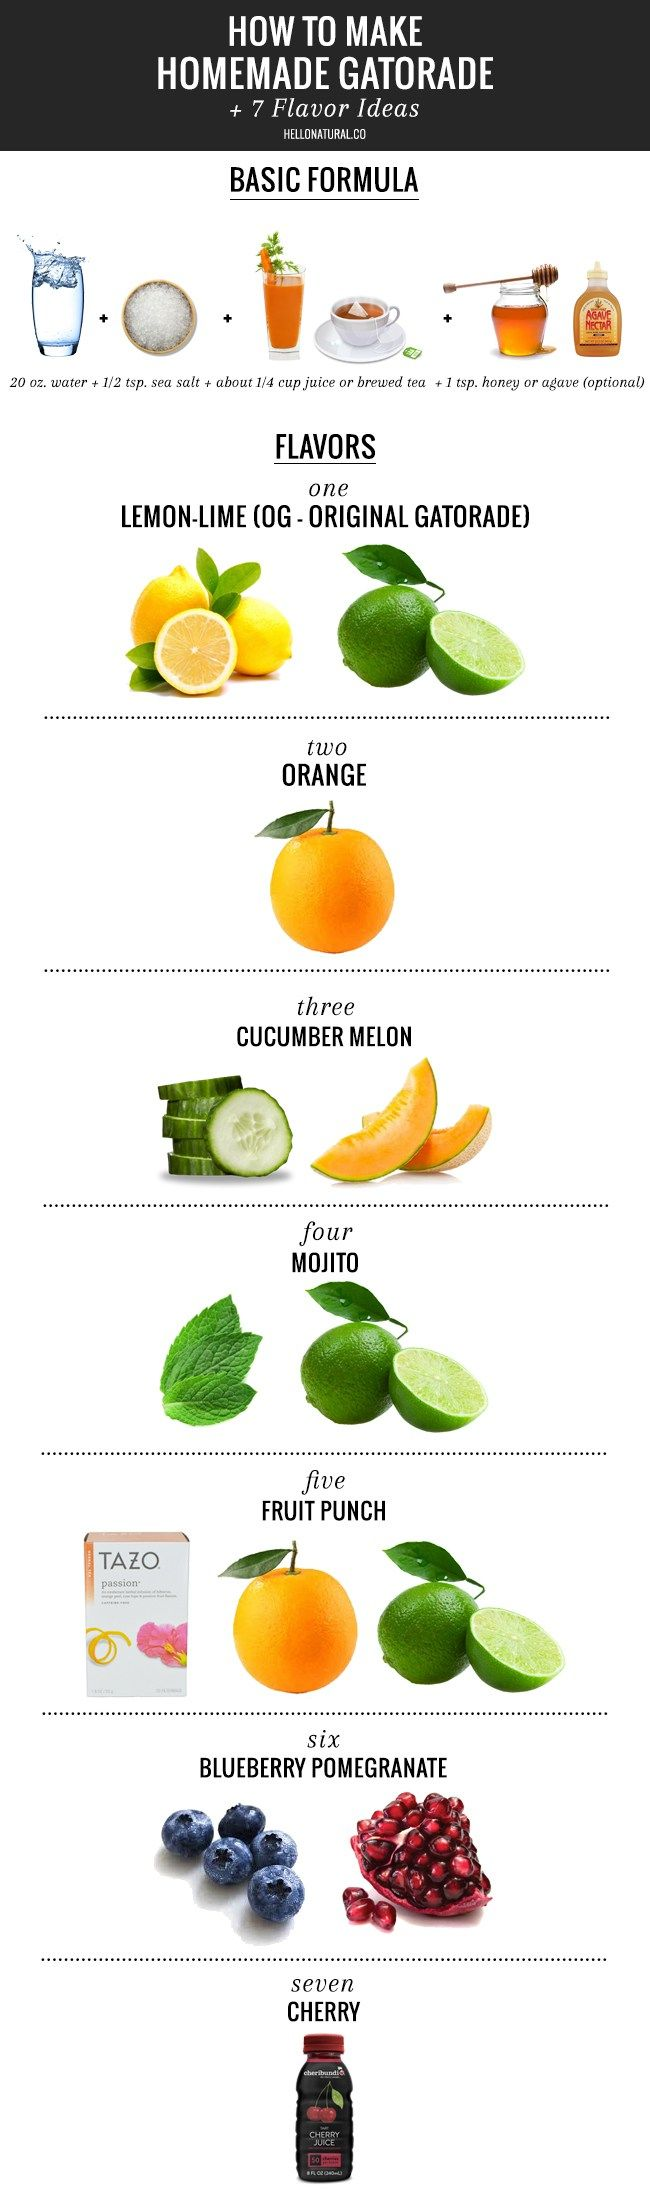 How to Make Homemade Gatorade + 7 Flavor Ideas Find healthy, delicious recipes at www.MarysLocalMarket.com Sustainable-Natural-Community #maryslocalmarket